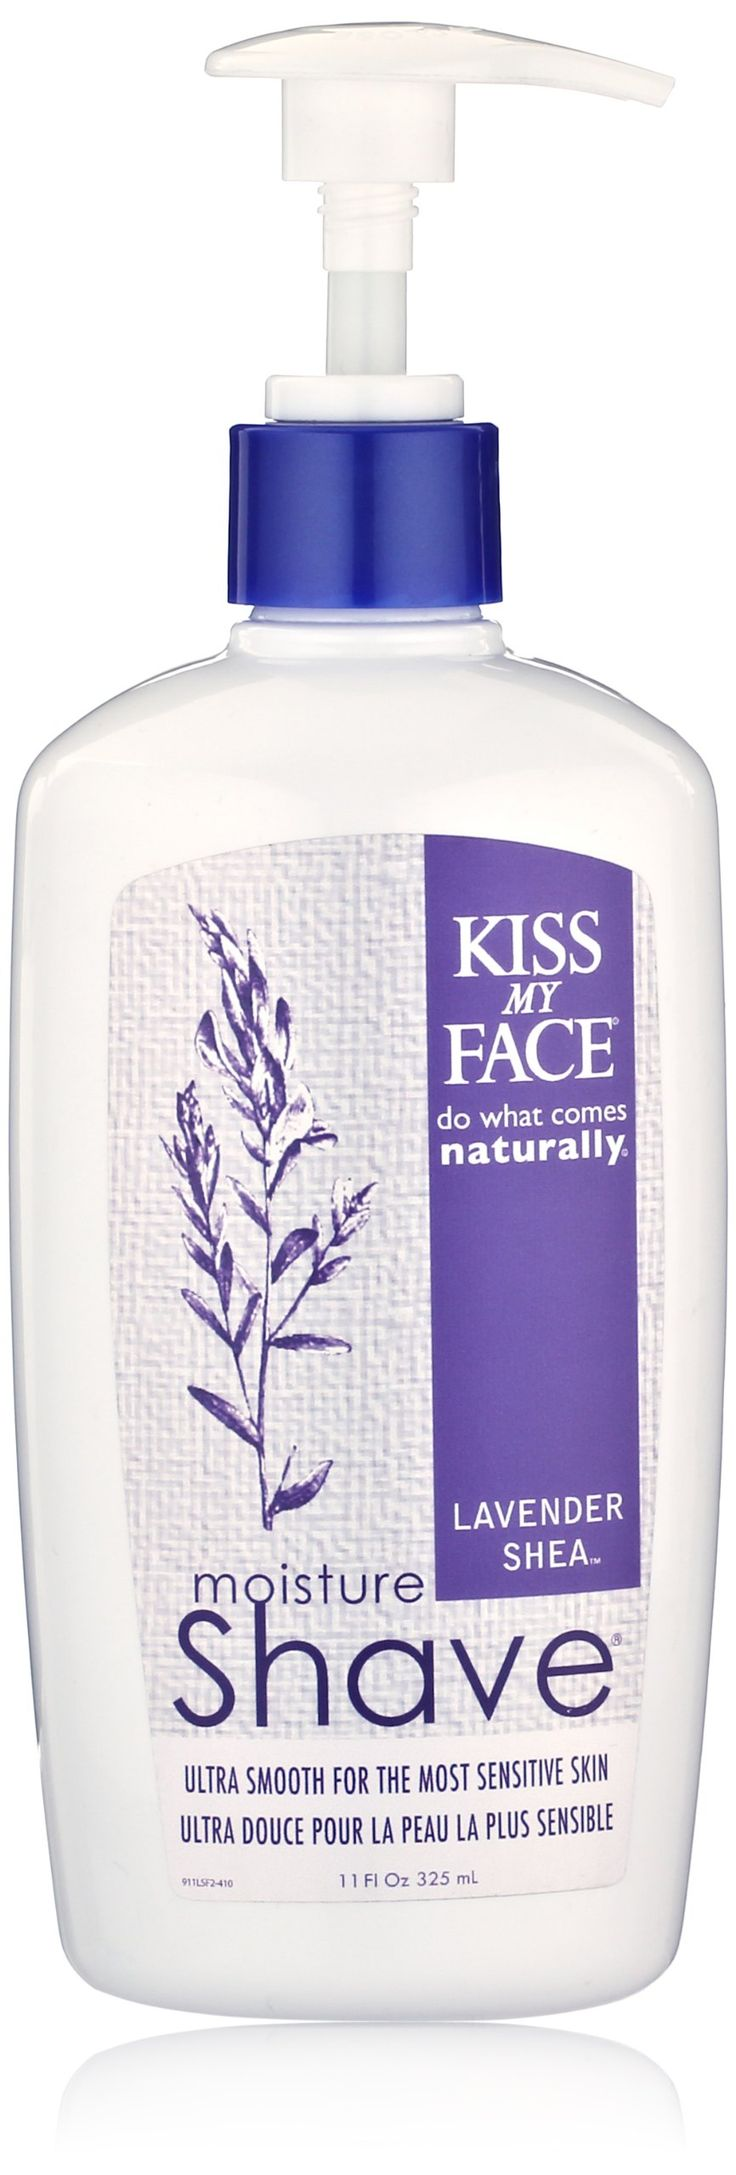 Kiss My Face Moisture Shave, Lavender & Shea , 11 oz. For face & body. Non-aerosol. Olive Oil & Aloe Vera to moisturize the skin. Goldenseal to protect against nicks and scratches.